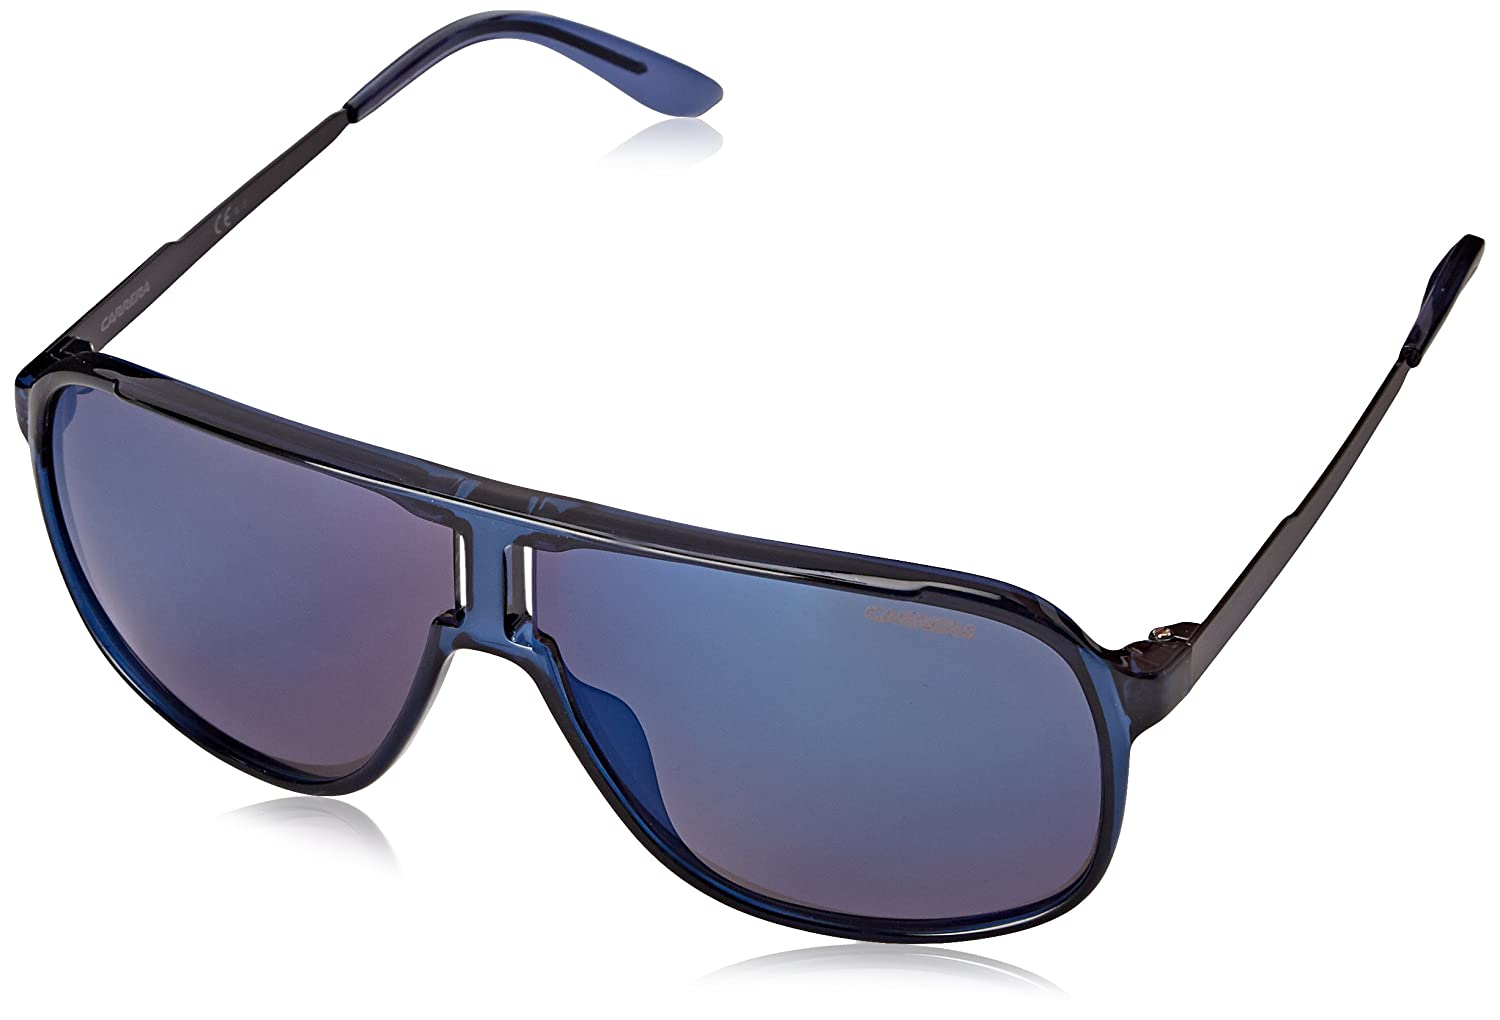 Carrera New Safari KU Tvm Gafas de sol Unisex Adulto